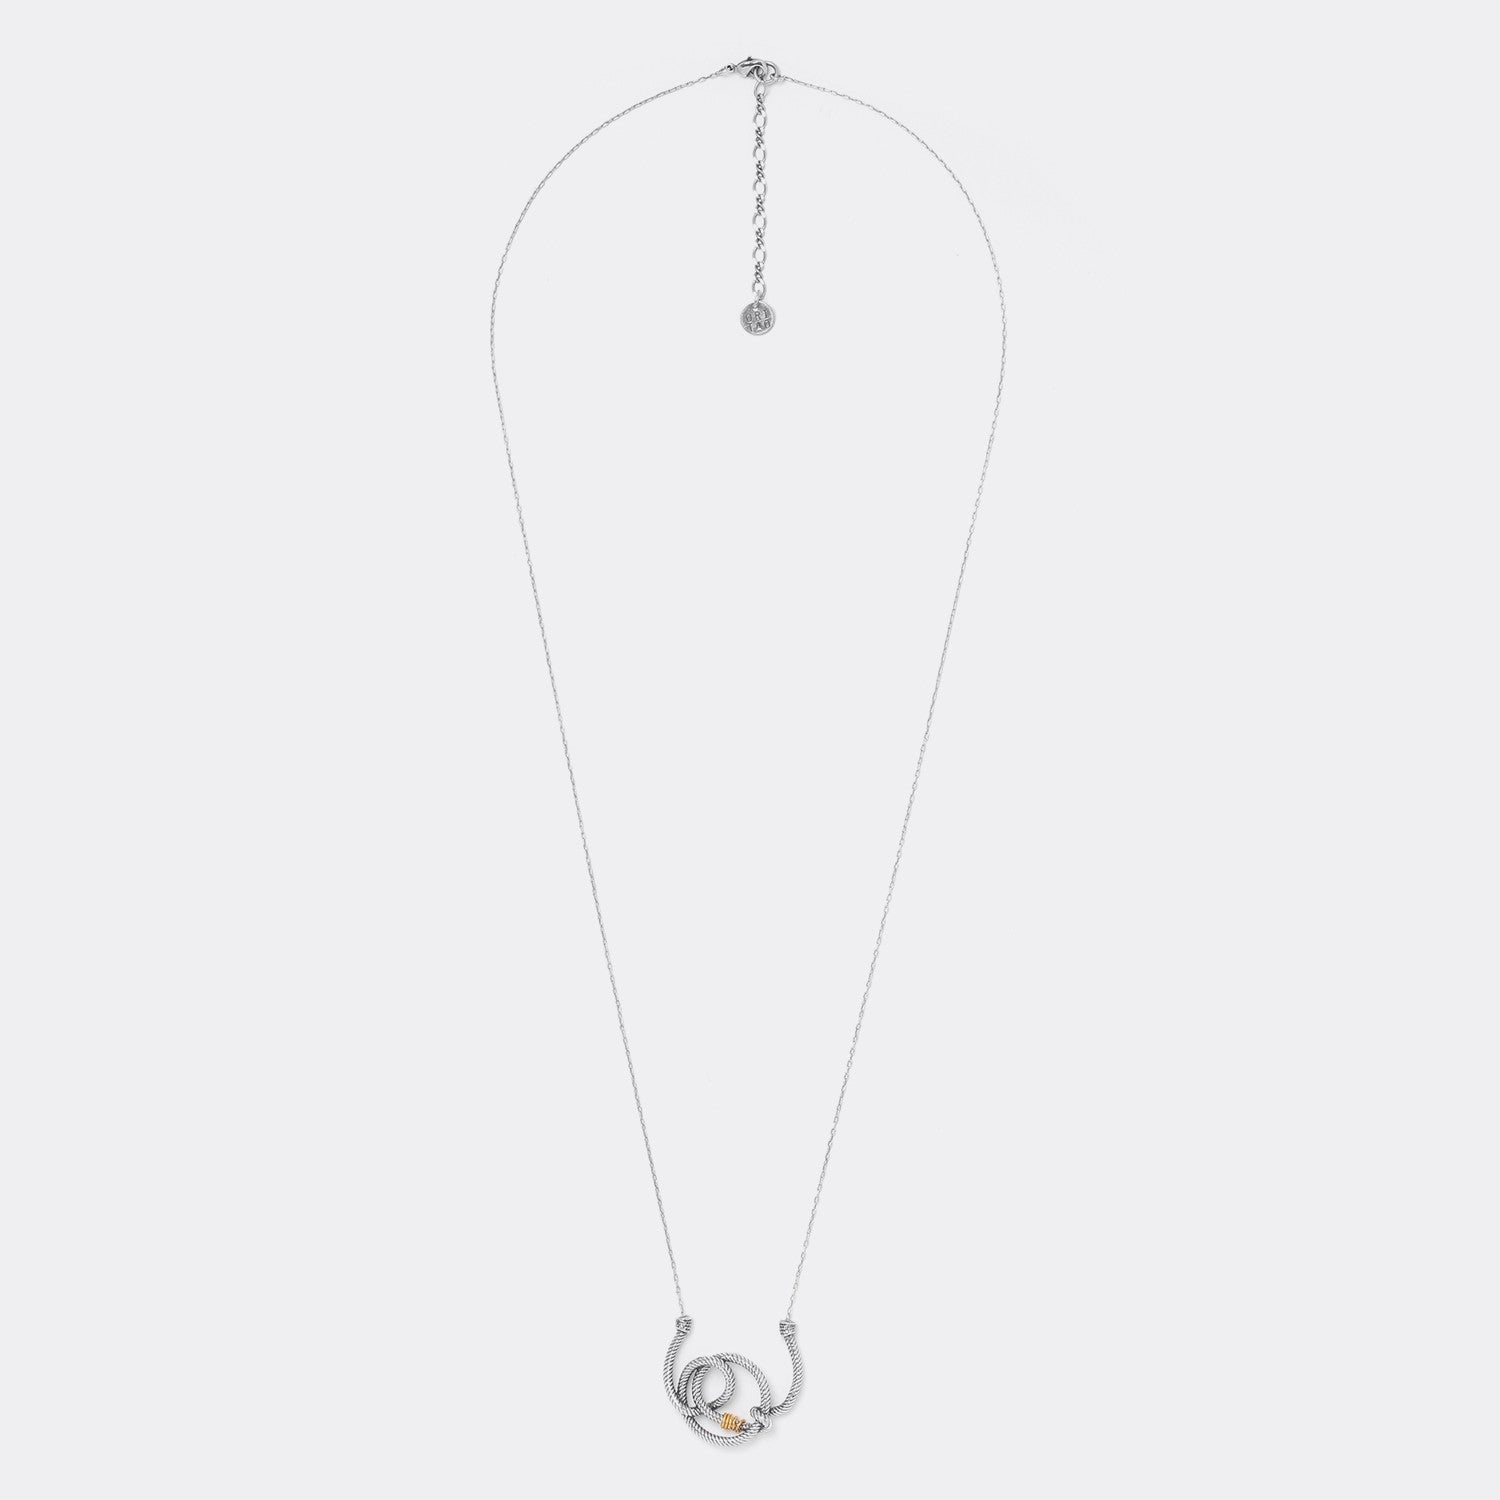 La Marina 15-30832 Necklace